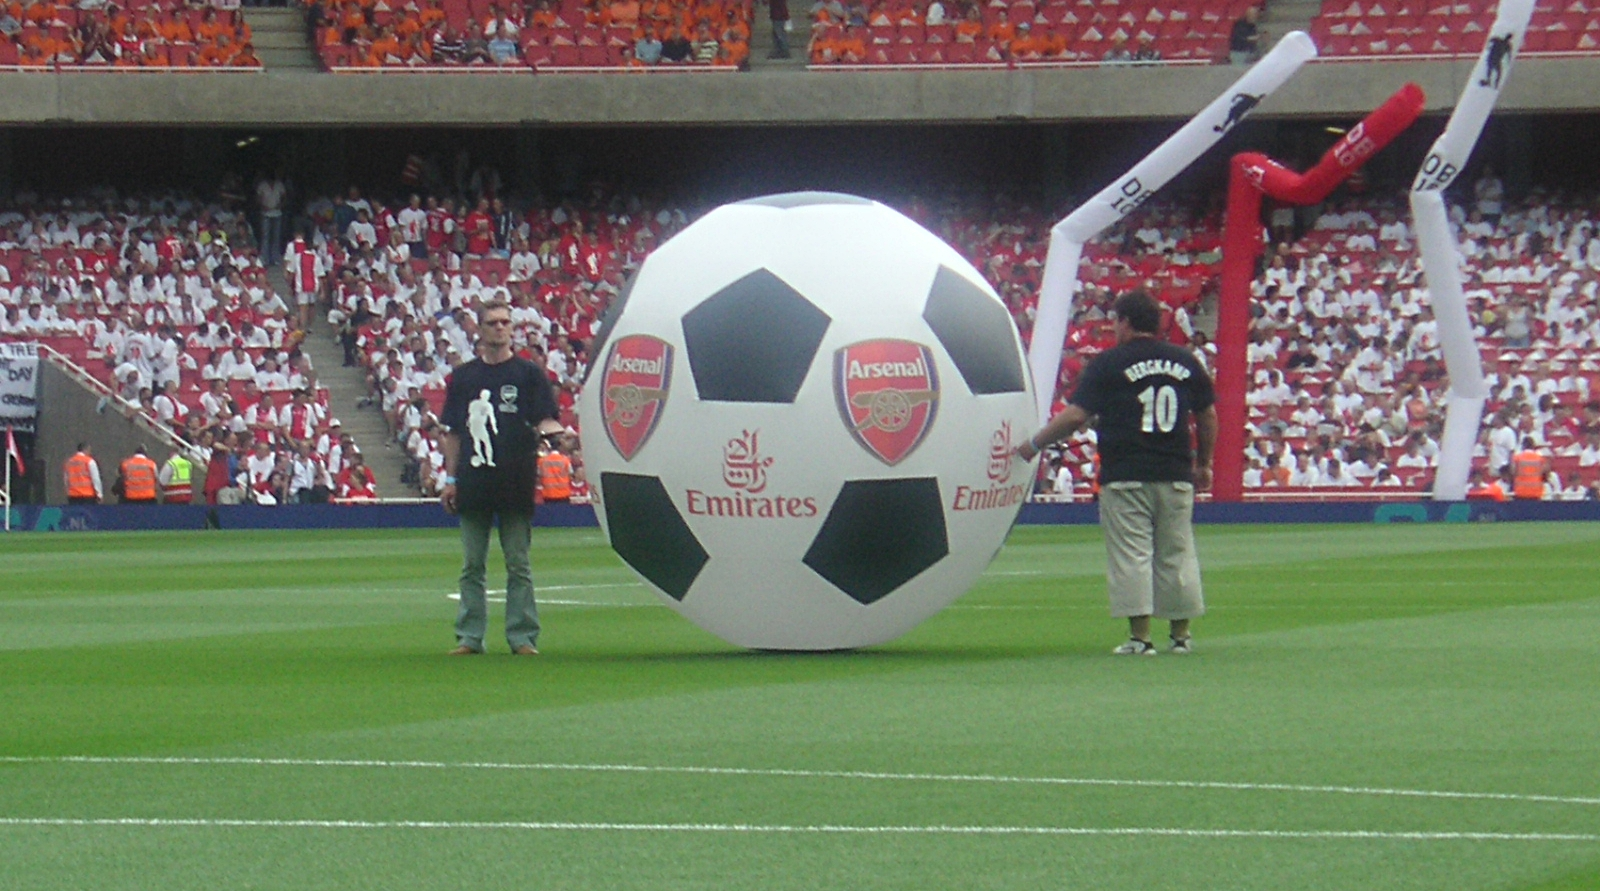 Ball Emirates1.JPG